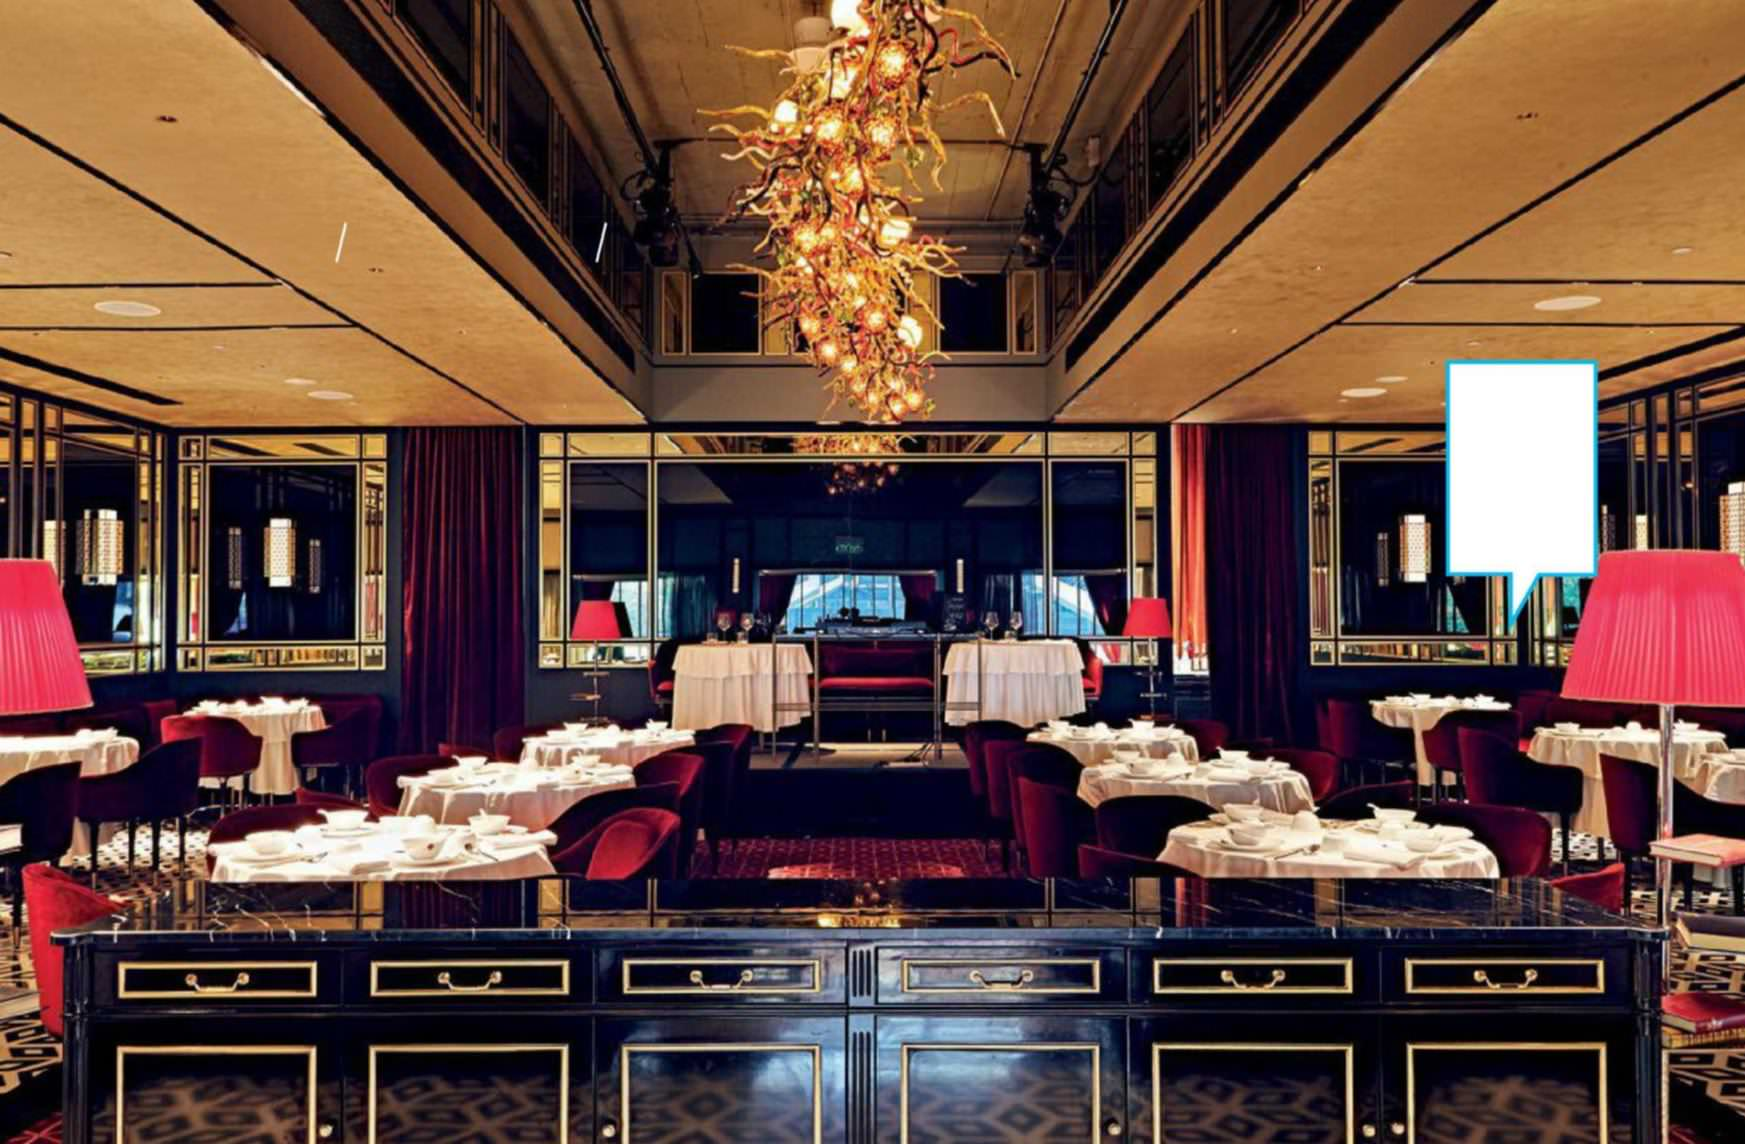 Art Deco Design Cuisine The Chinese Restaurant That Doesn T Want To Be A Conventional